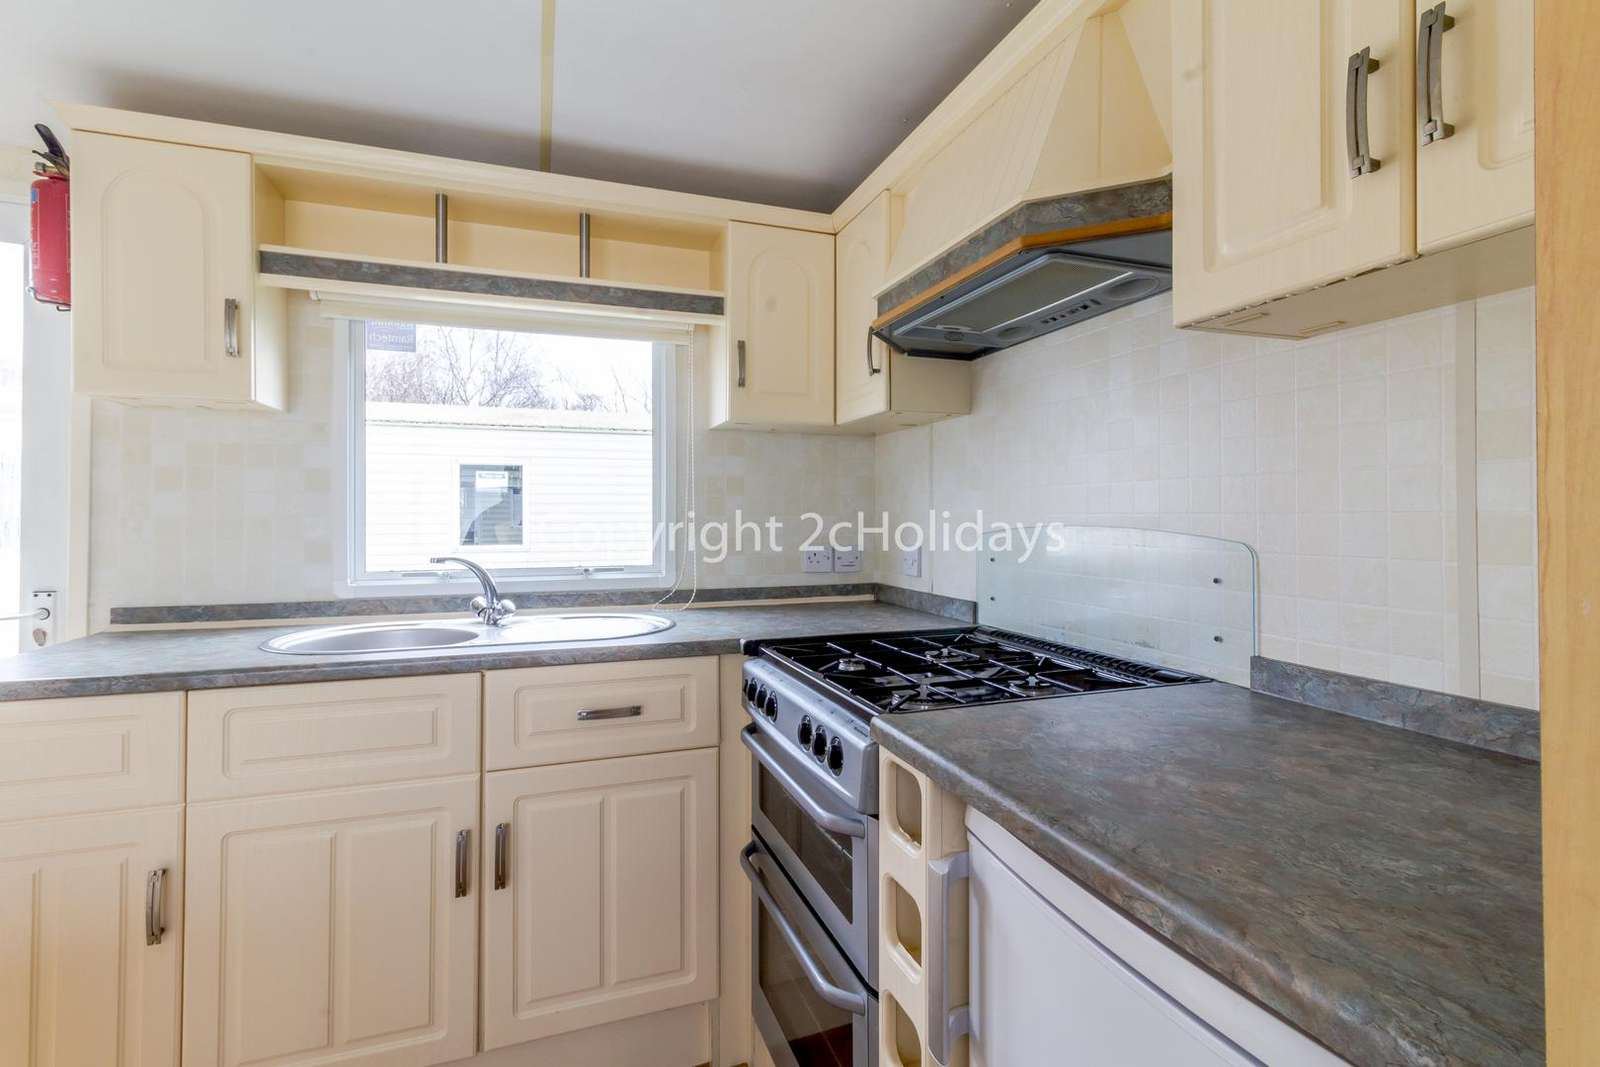 You can find a full size oven/hob in this kitchen!